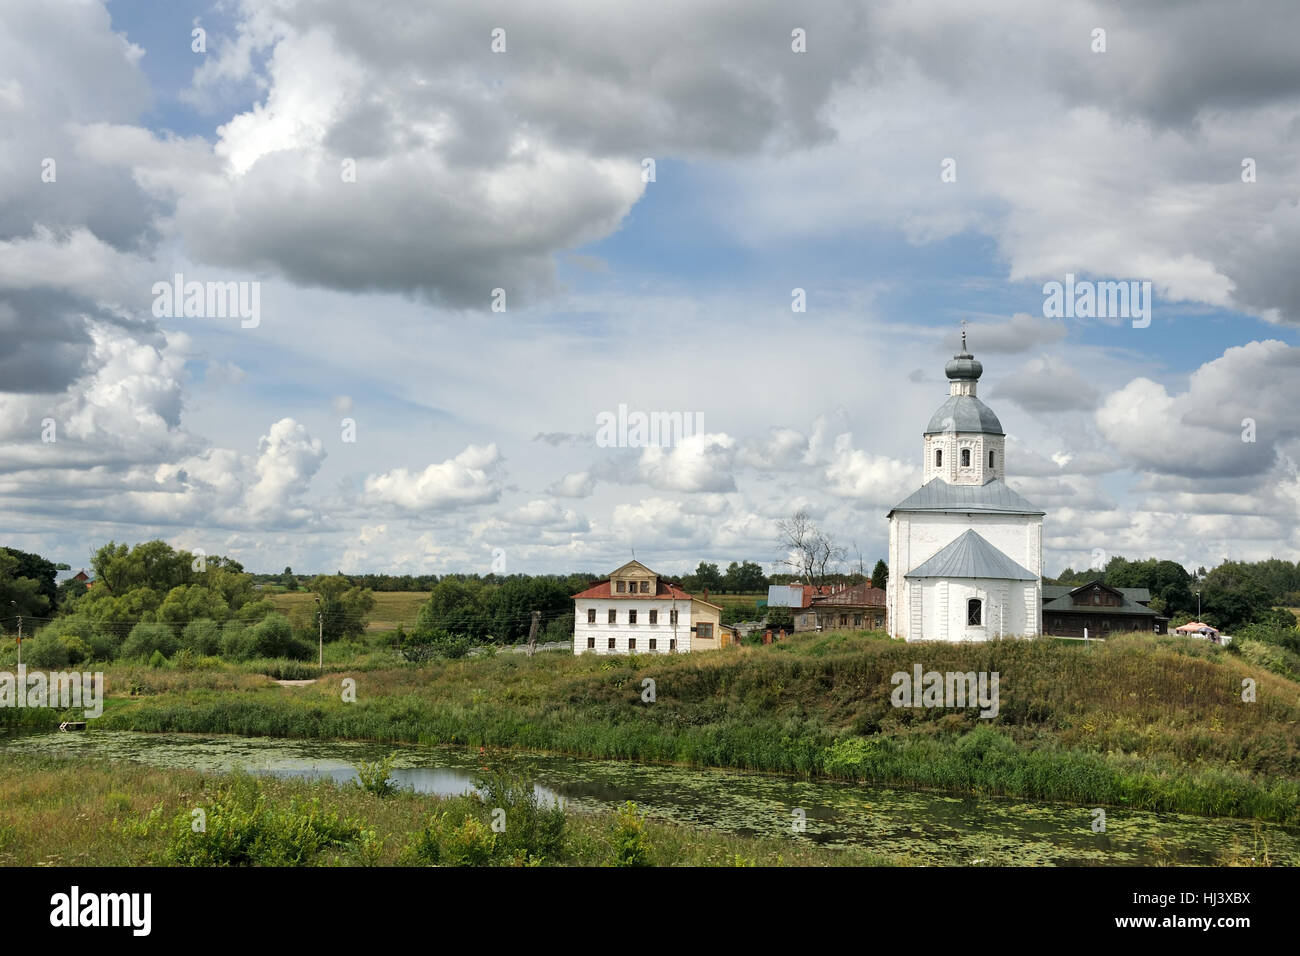 White Clouds Around the Church of Elijah the Prophet. Landscapes of Suzdal, Russia. - Stock Image